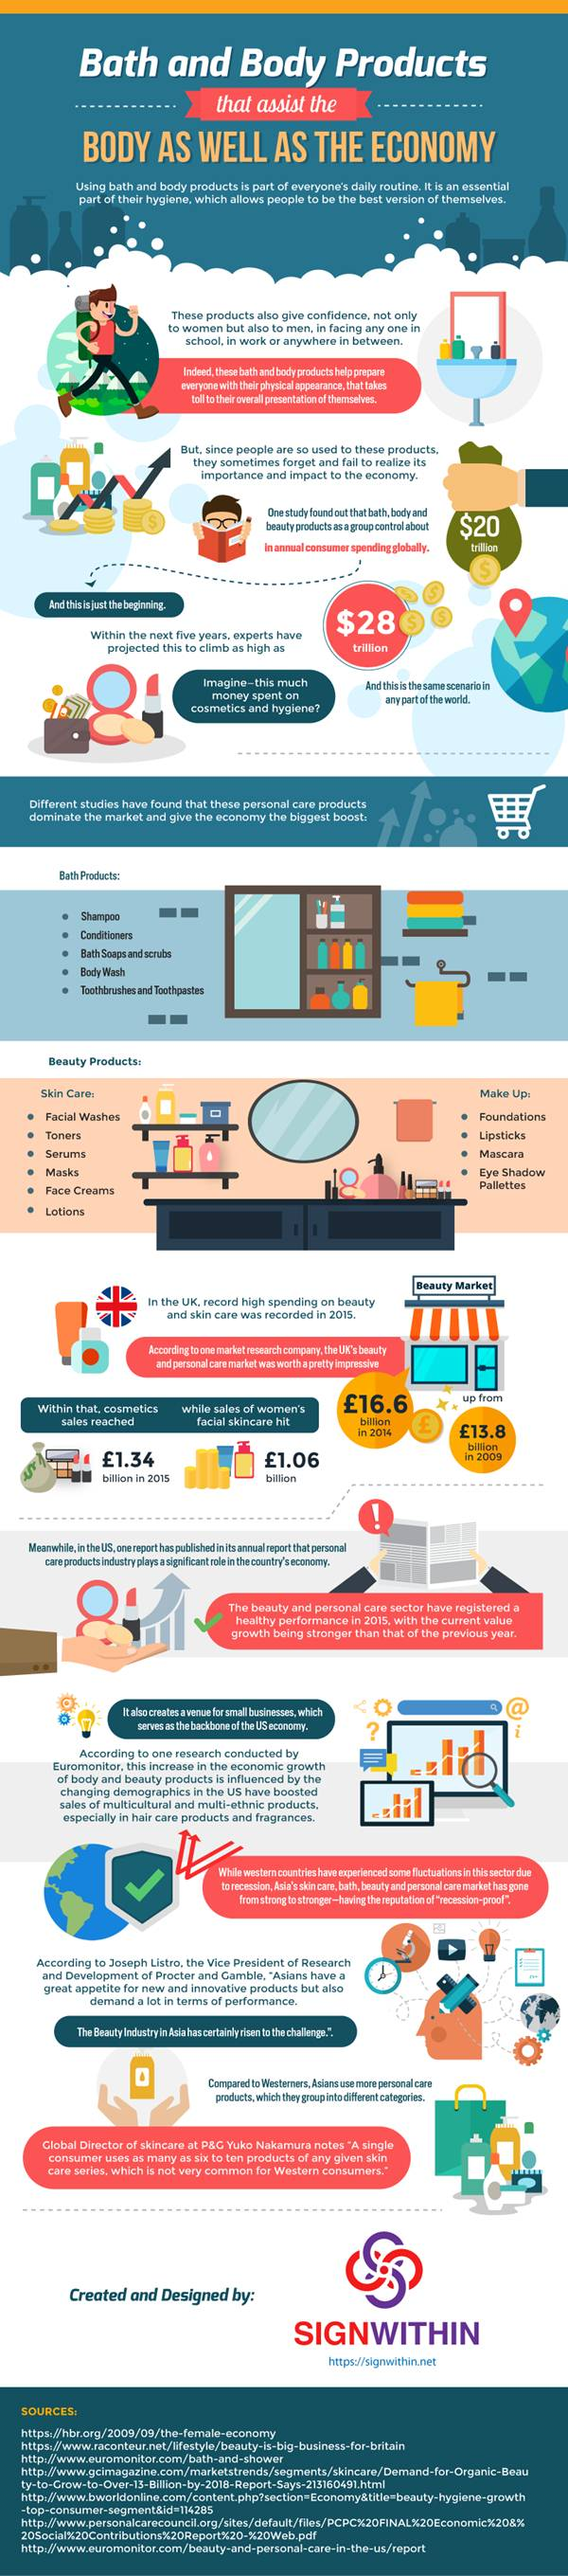 Infographic : Bath and Body Products that assist the body as well as the economy